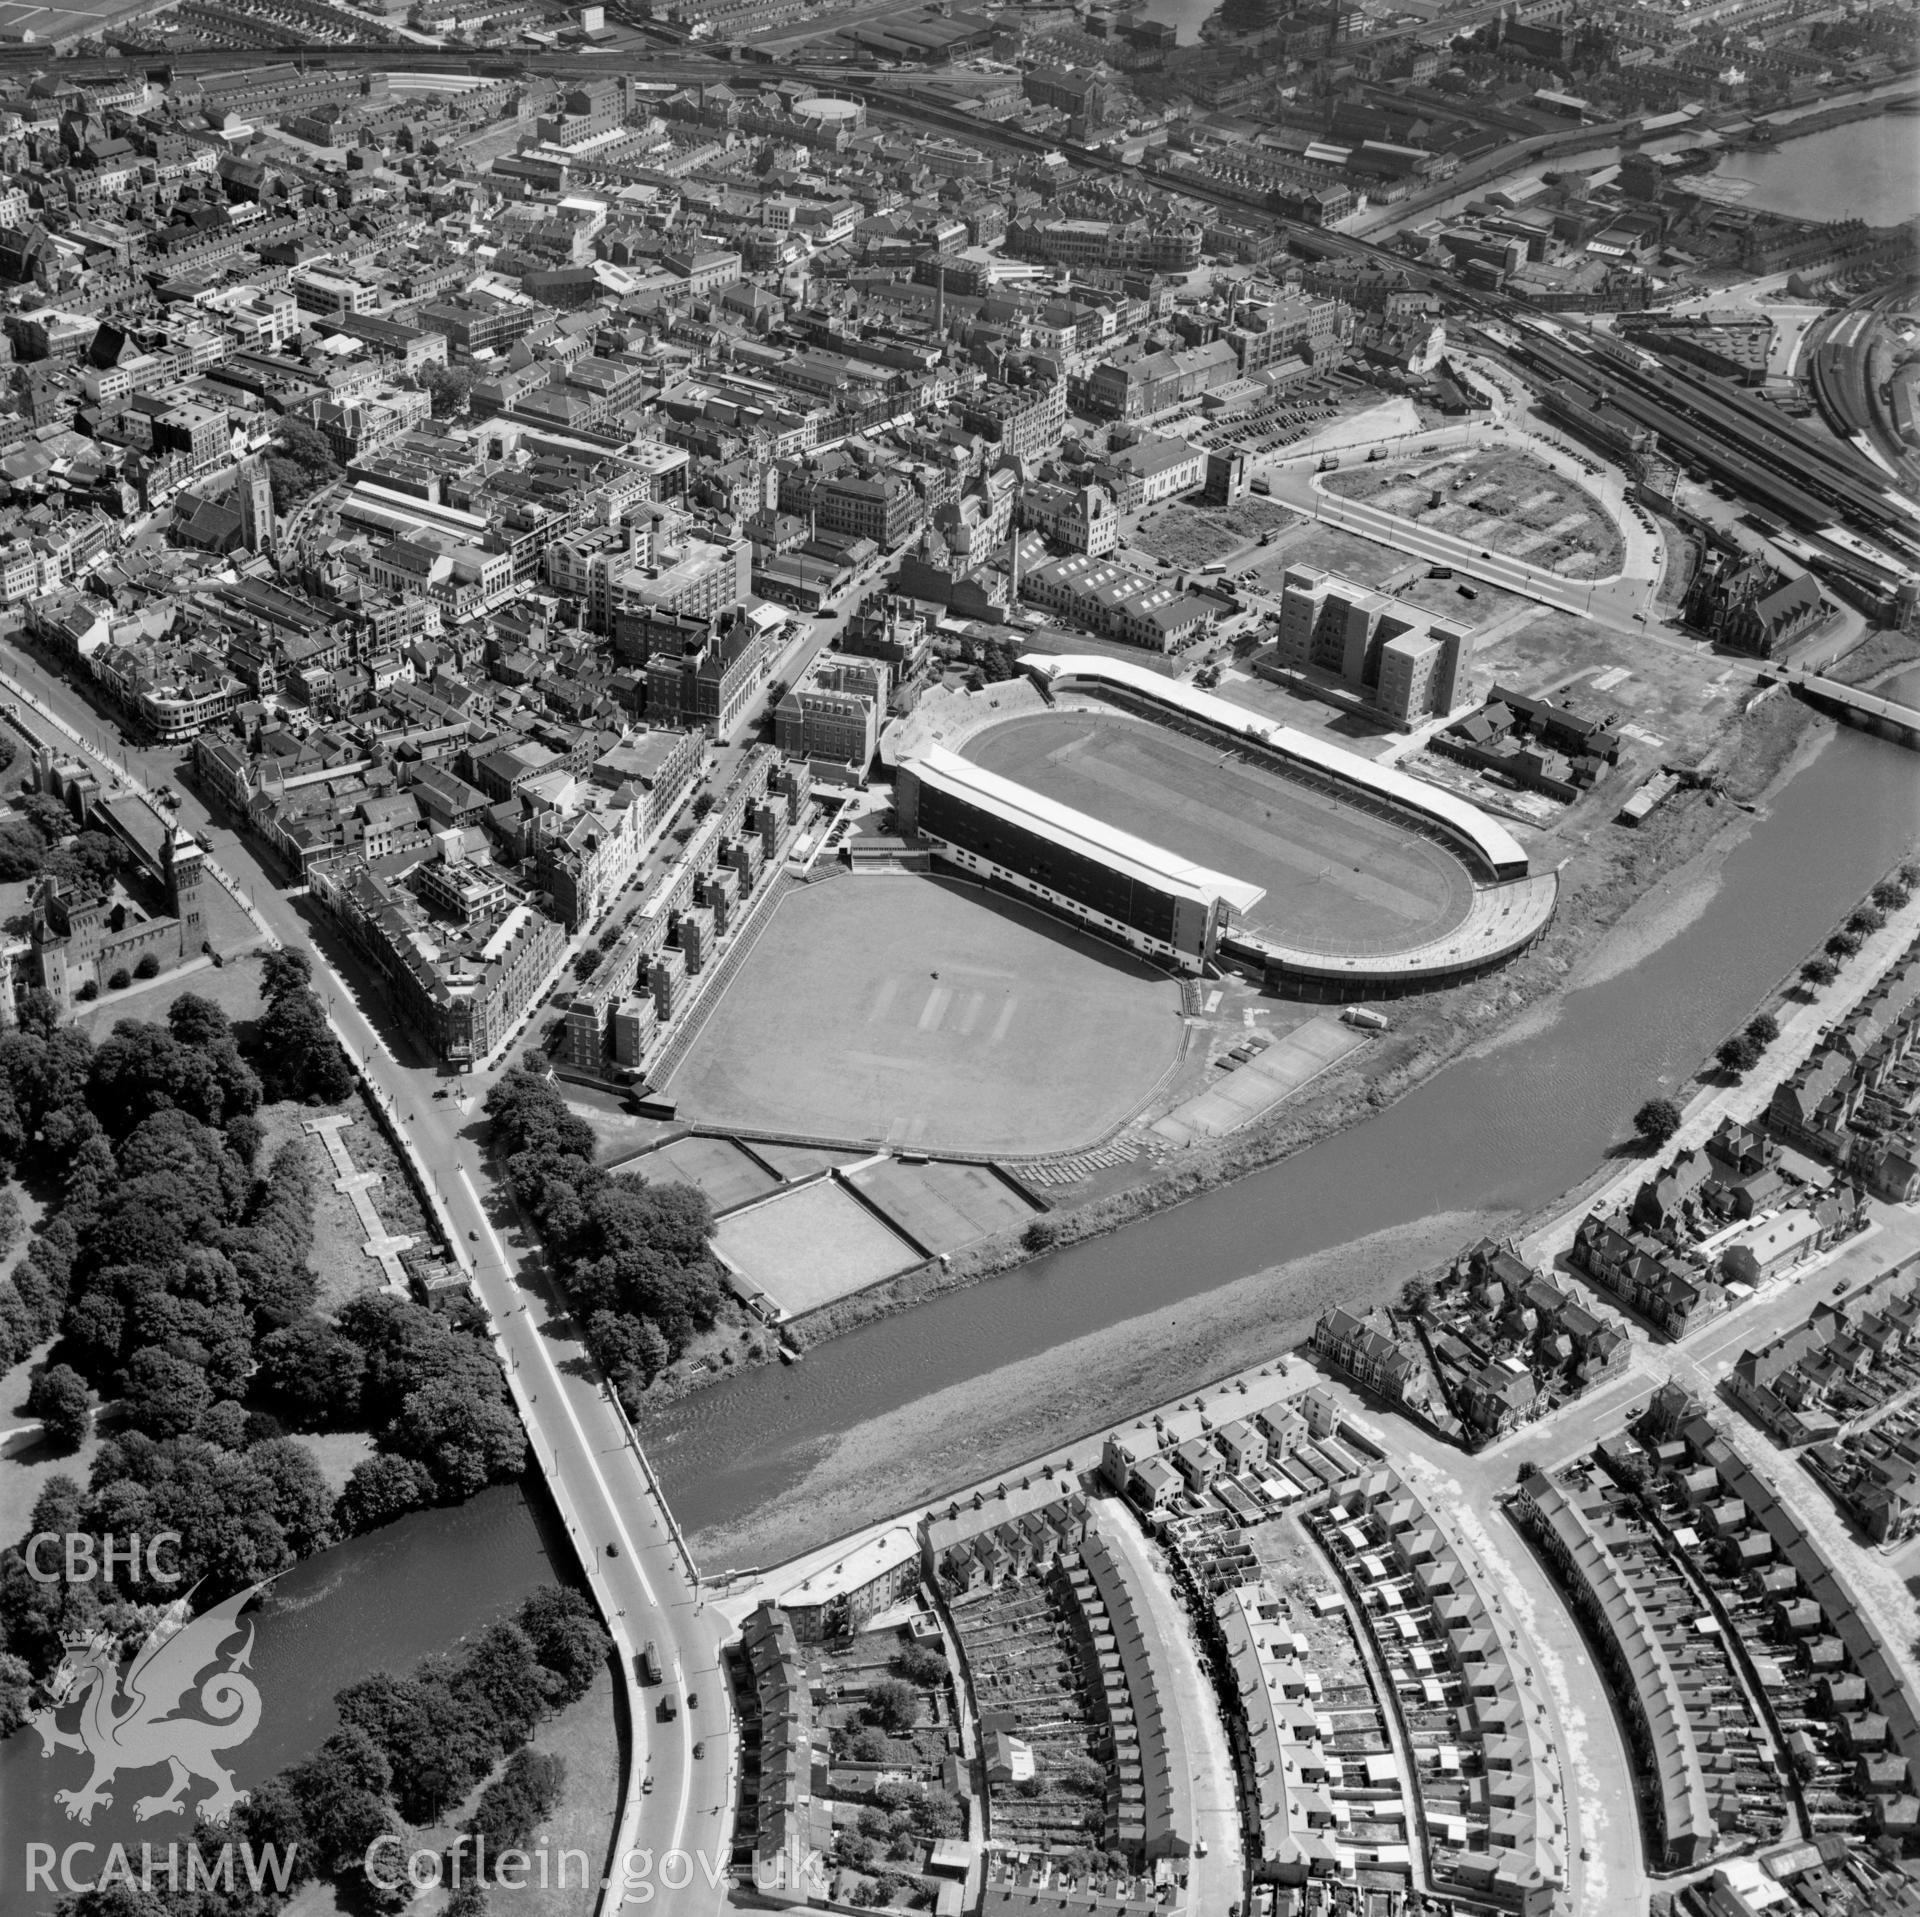 General view of Cardiff showing Arms Park